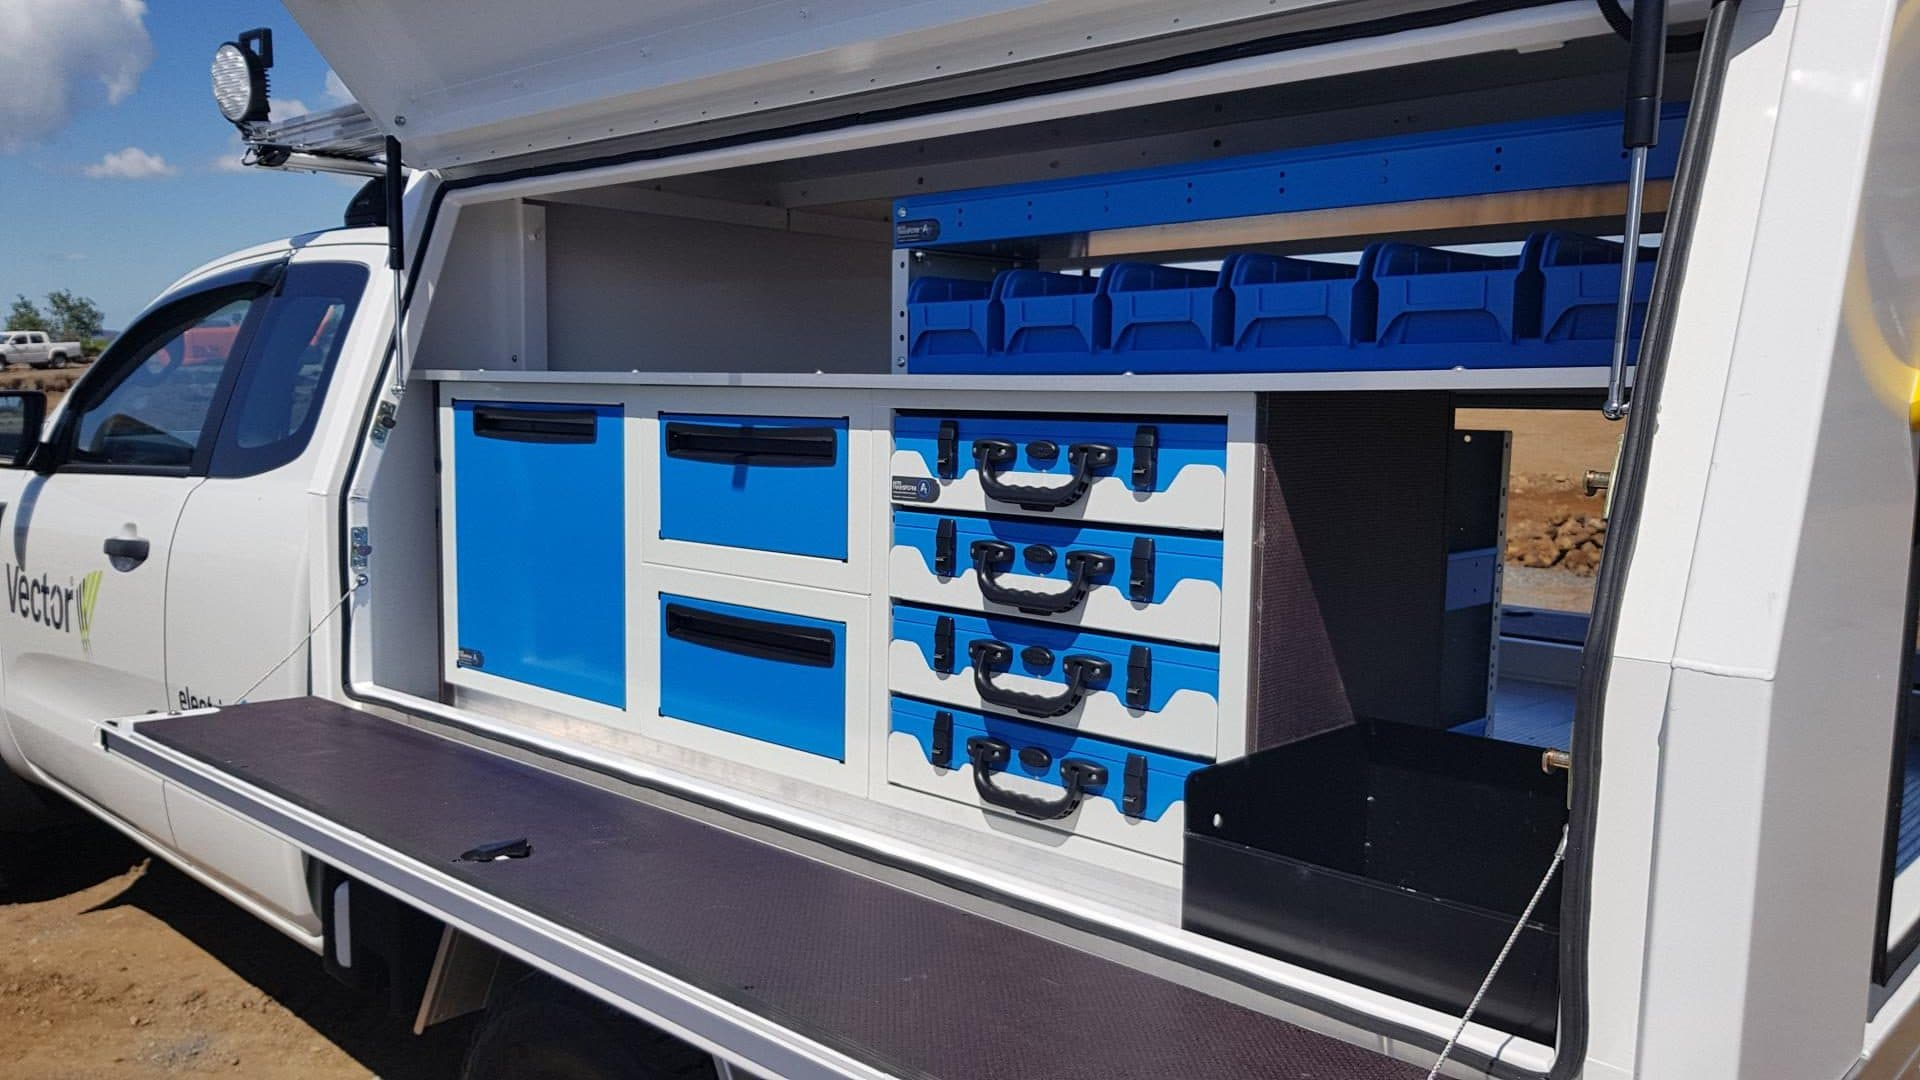 Modular drawers and shelving for utes